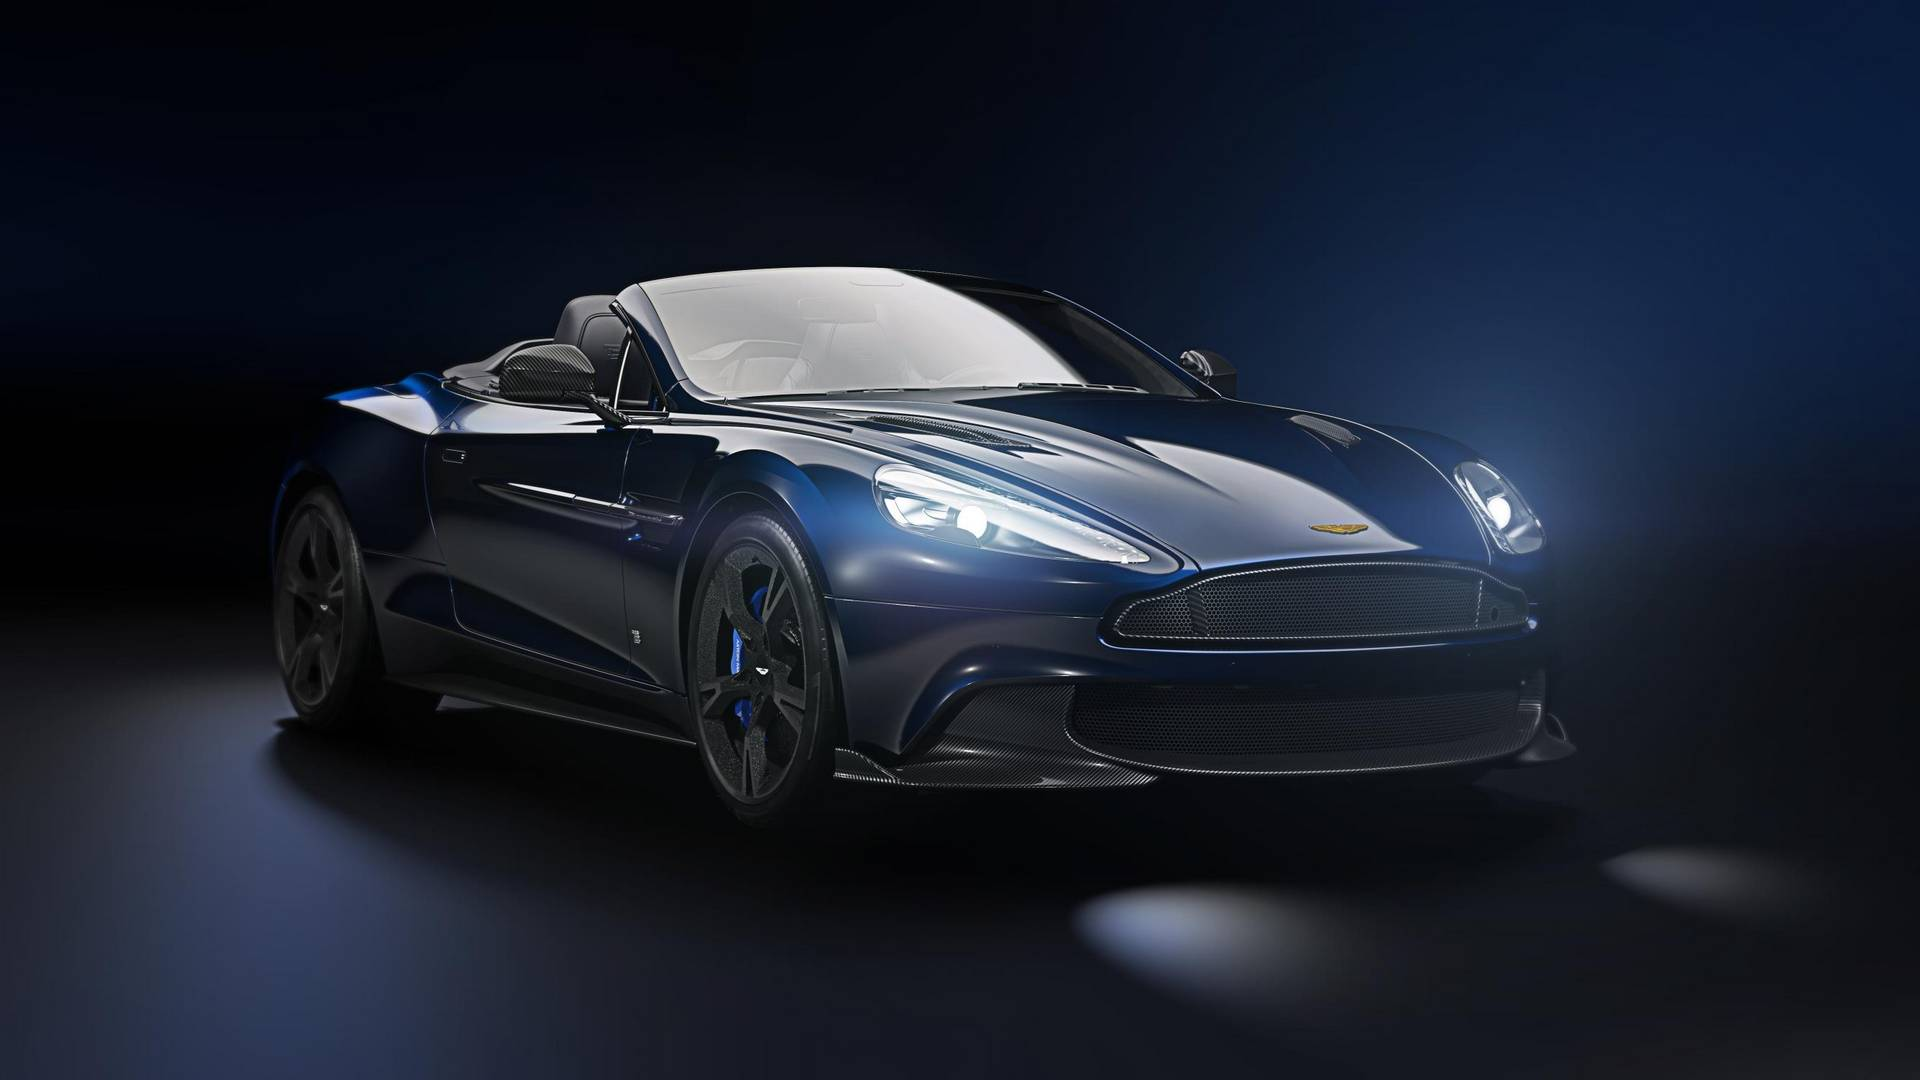 Official: Aston Martin Vanquish S Volante 'Tom Brady Signature Edition'